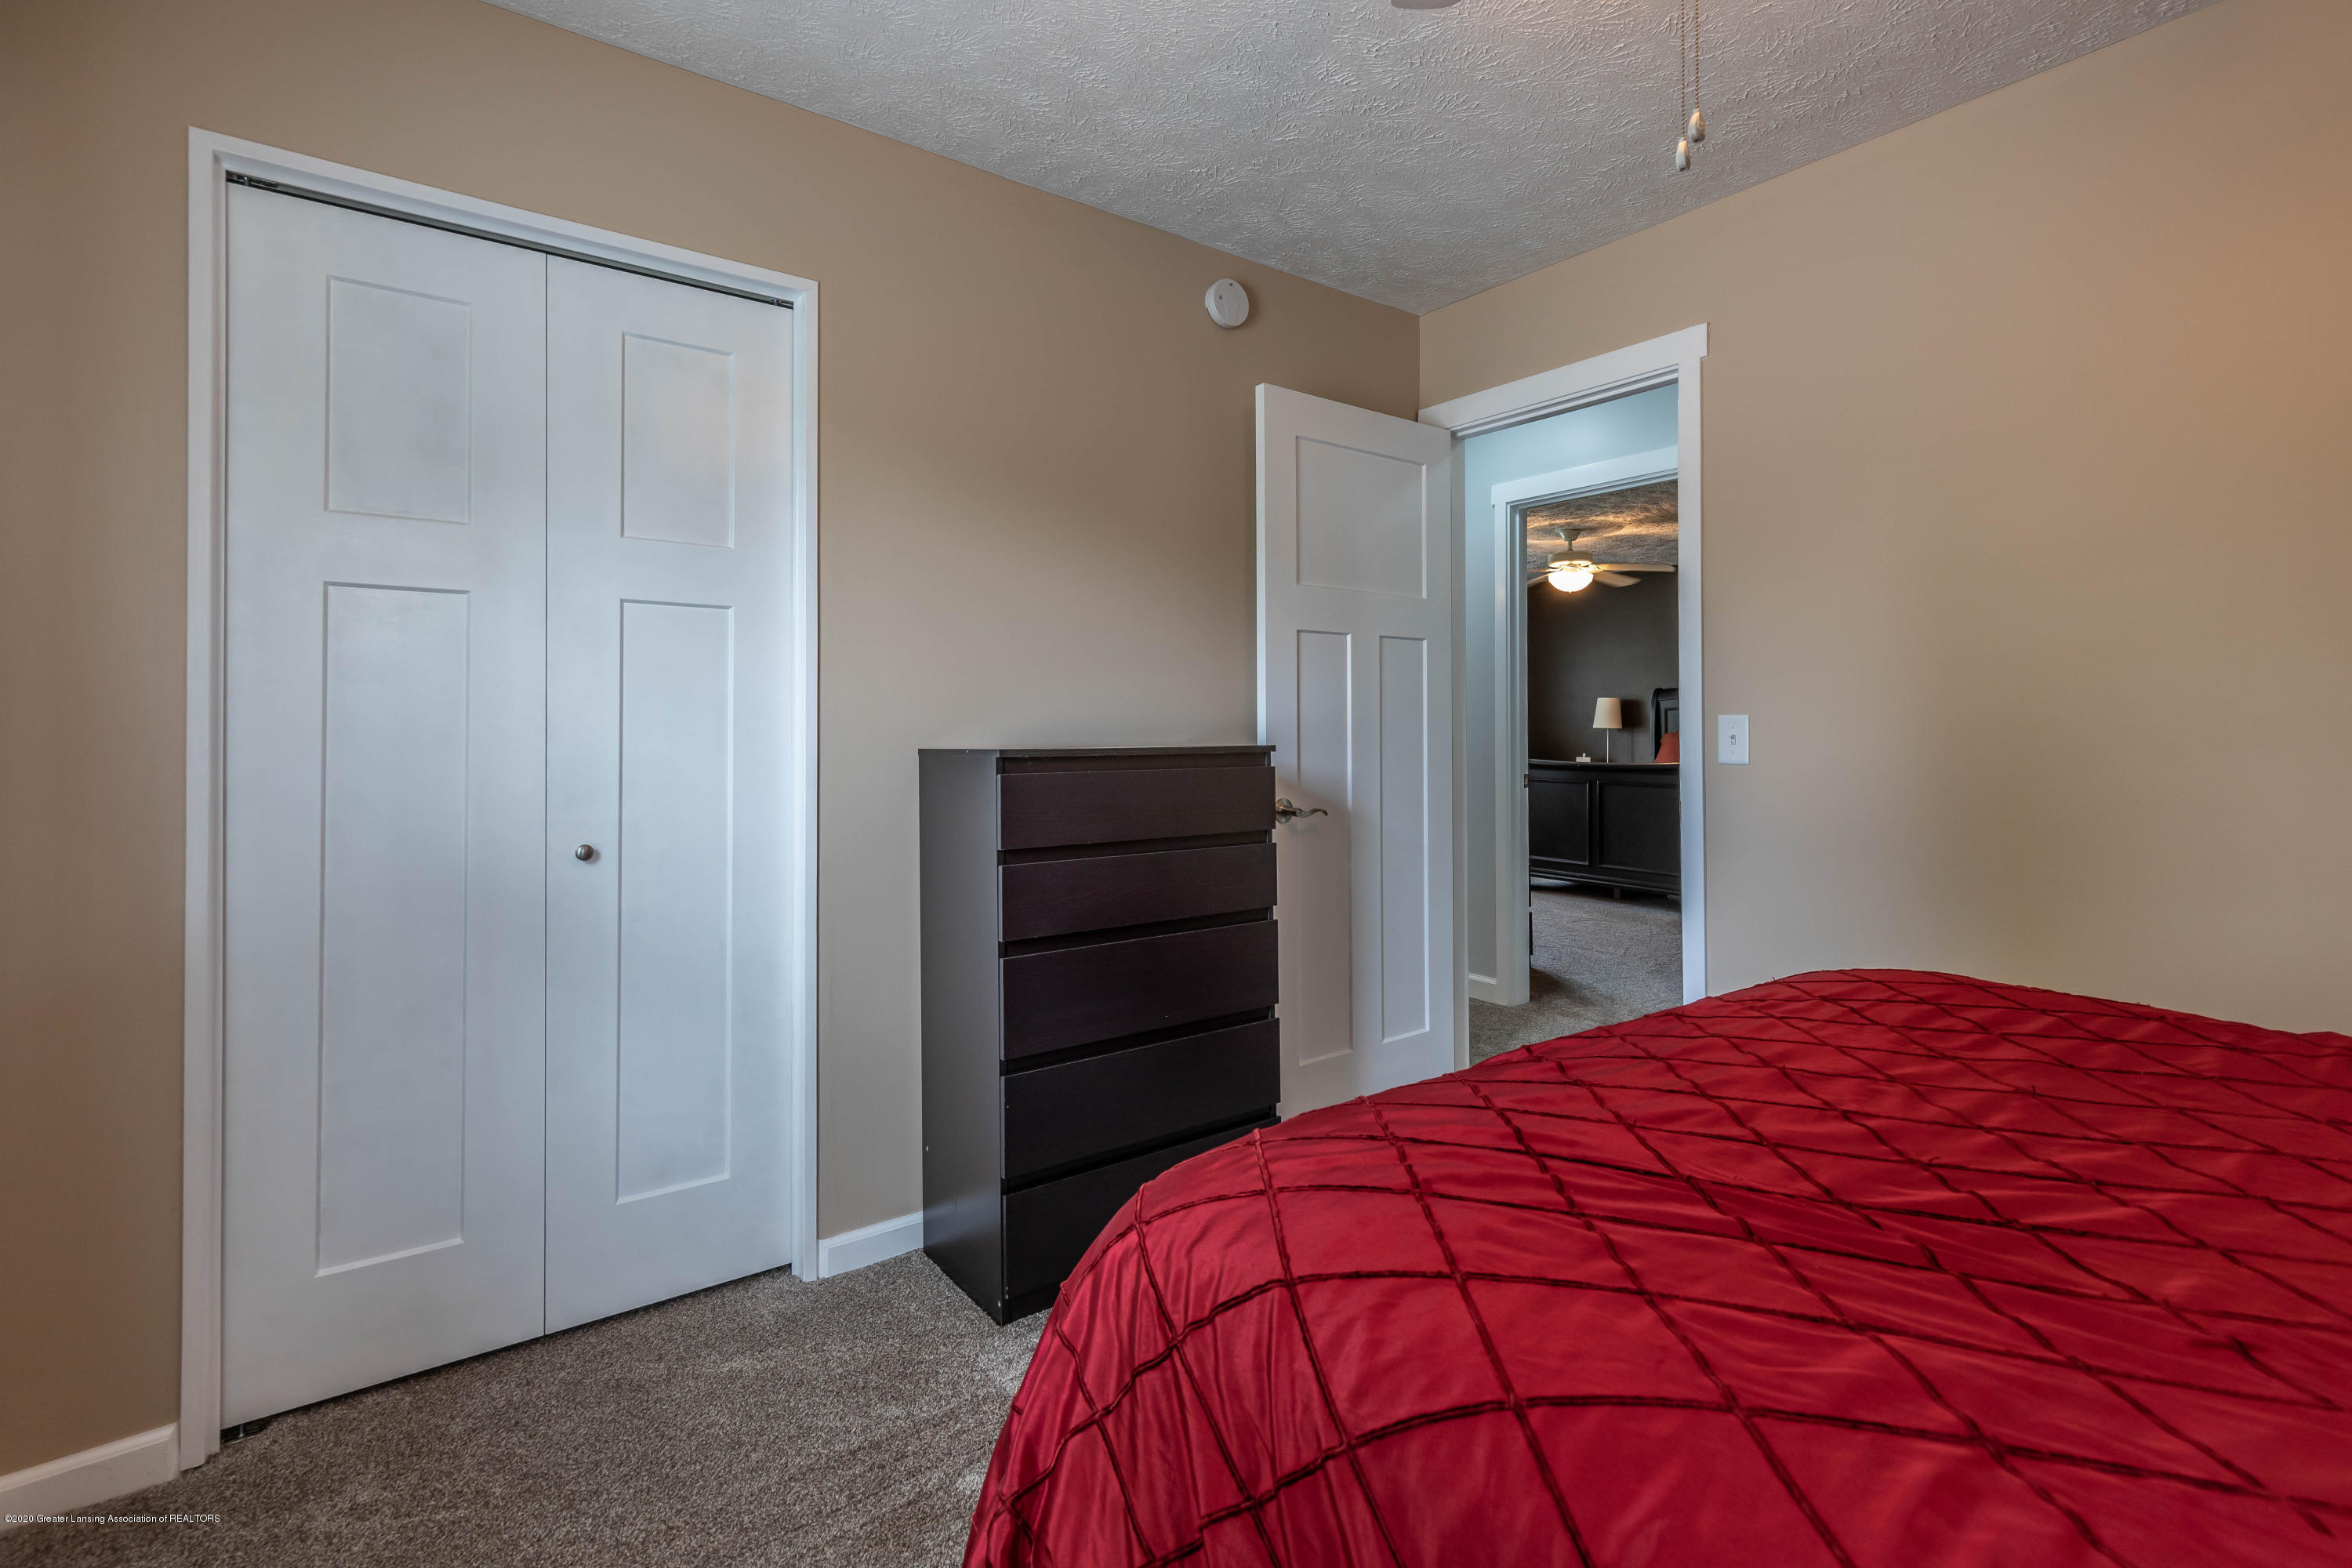 13532 Turner Rd - Bedroom #2 - 24